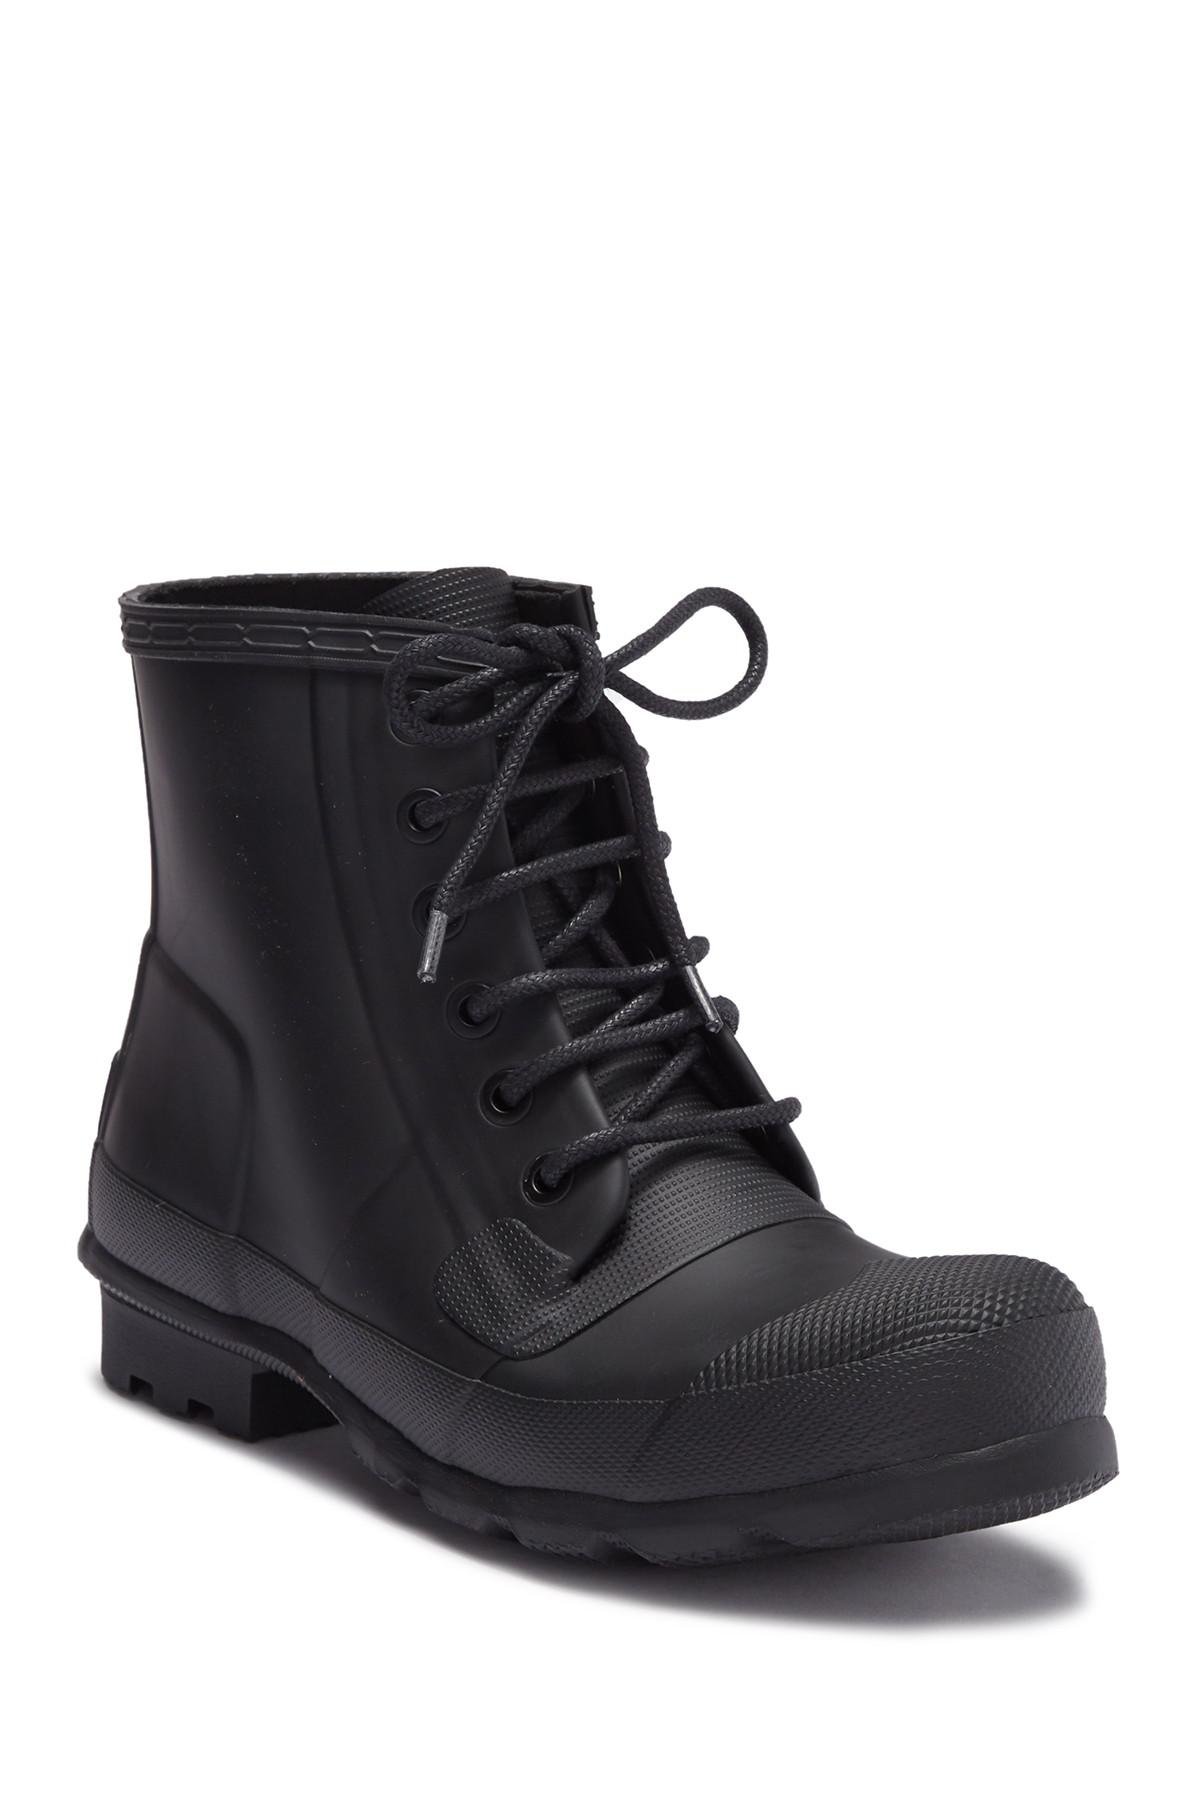 Hunter Rubber Original Lace Up Rain Boot In Black For Men